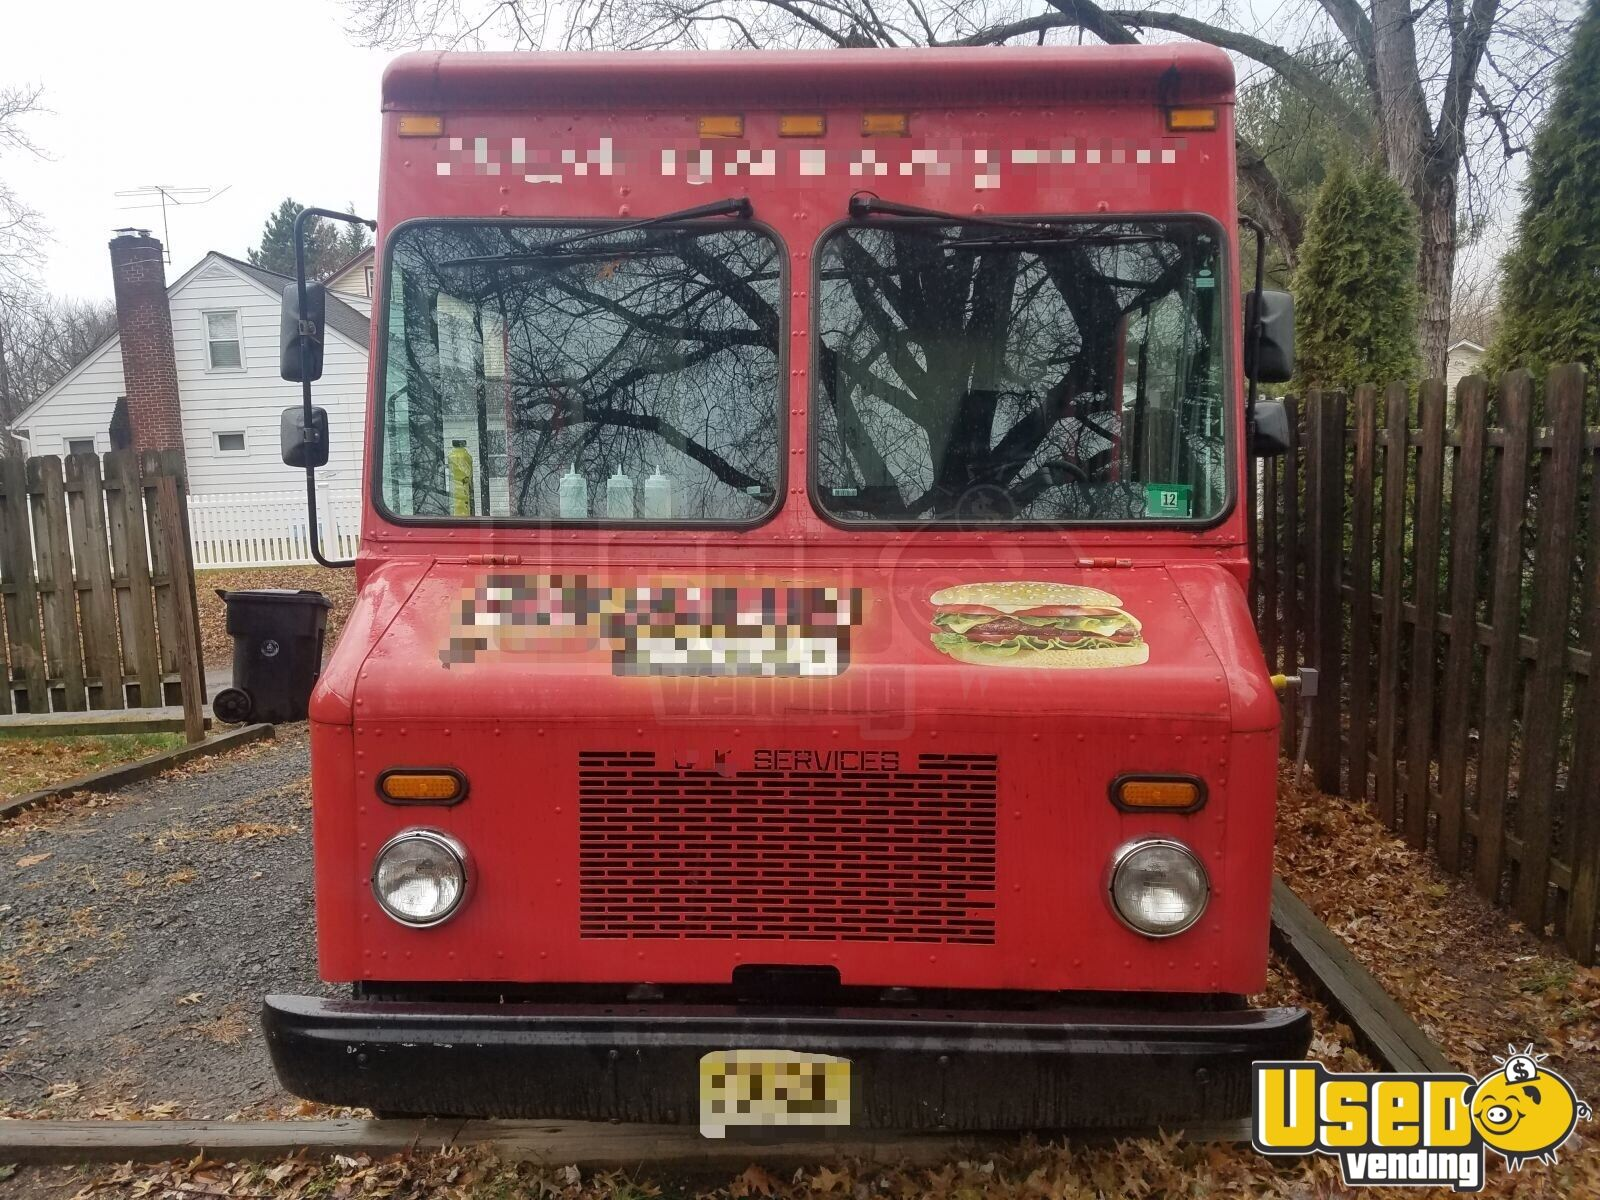 2007 Workhorse Kitchen Food Truck All-purpose Food Truck Floor Drains New Jersey Gas Engine for Sale - 5